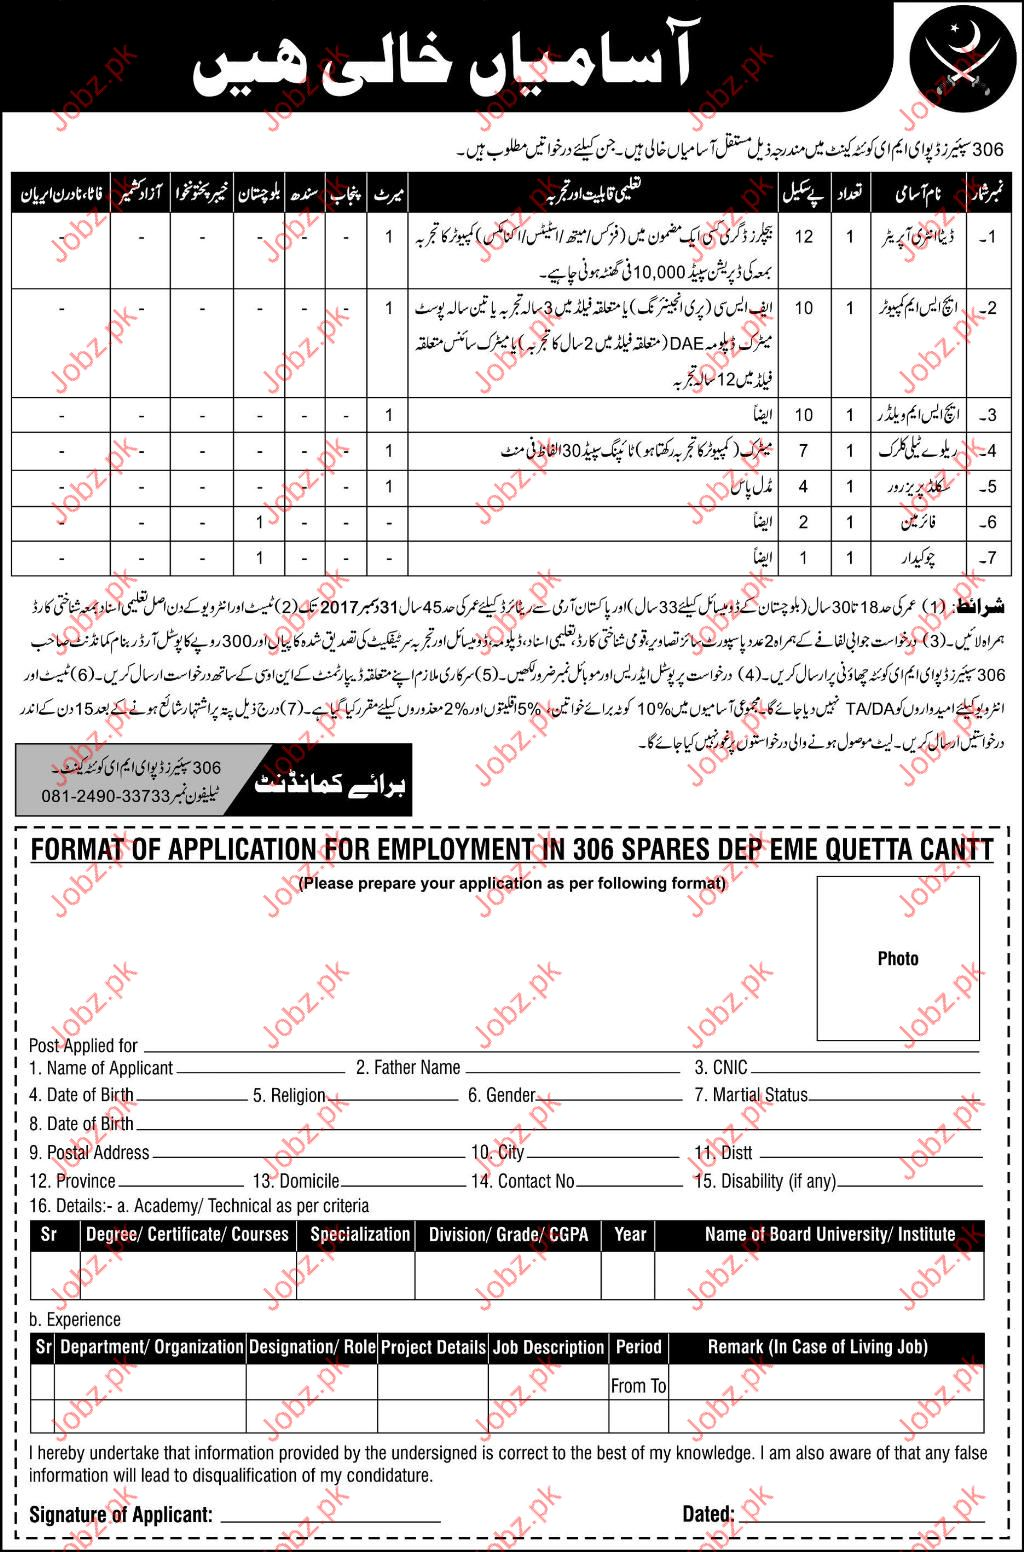 Data Entry Operators and HSM required